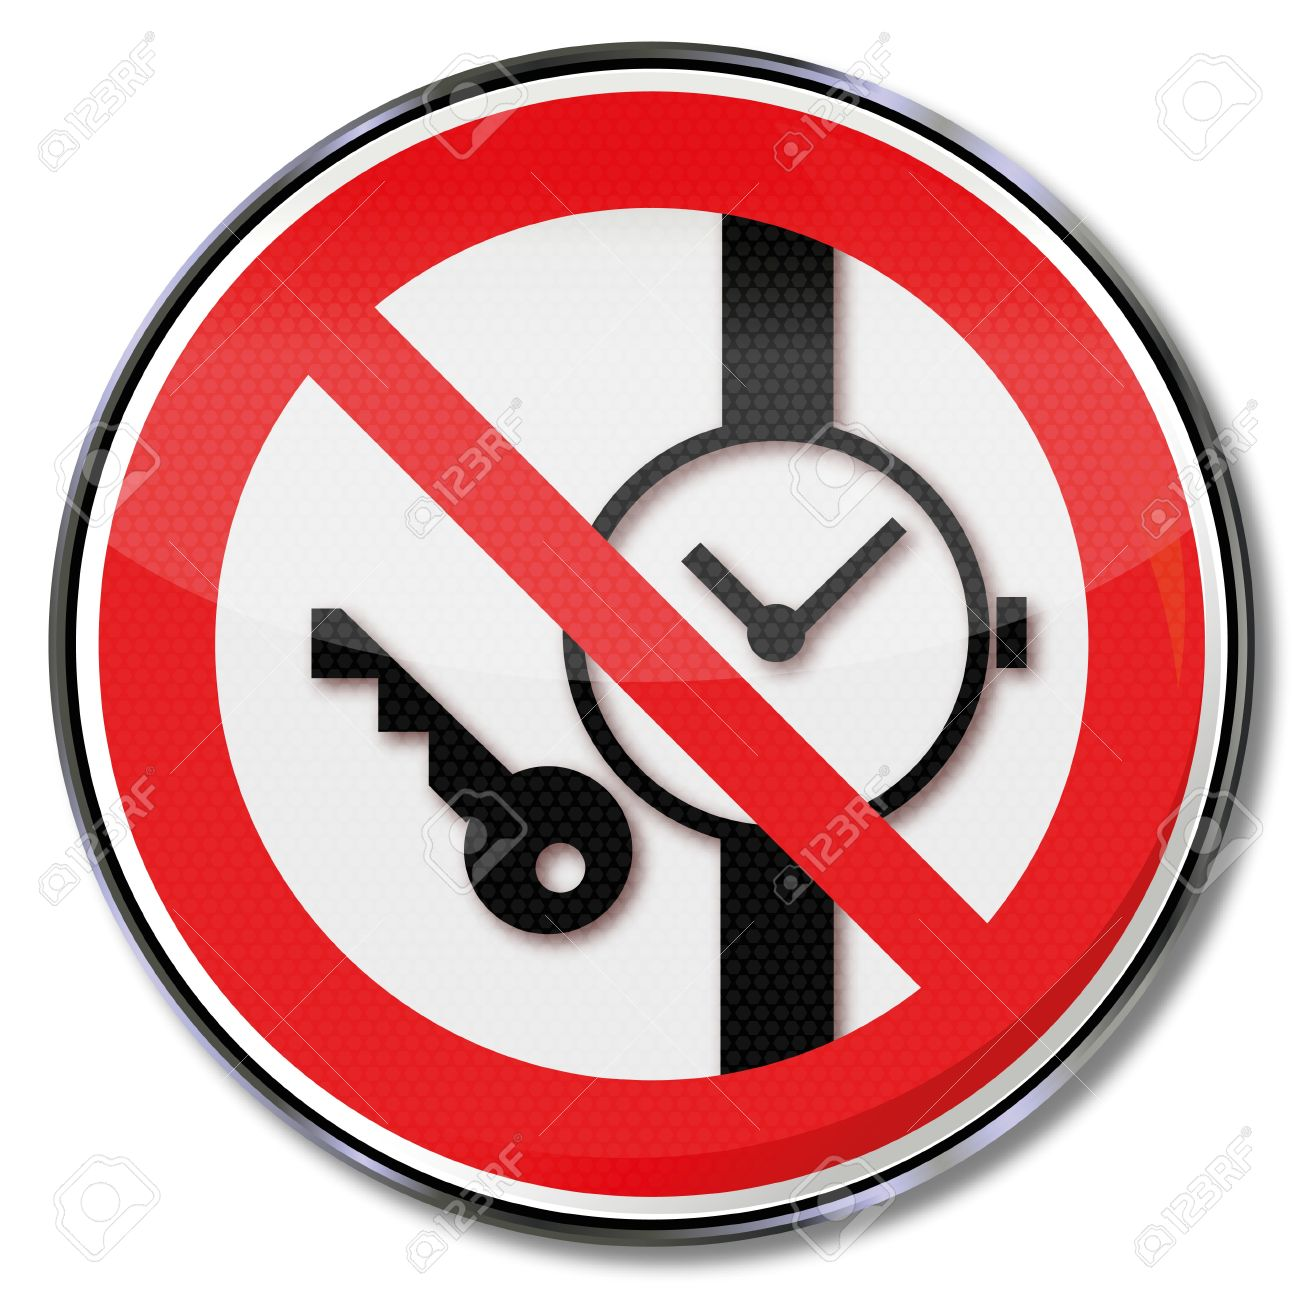 Carrying signs banning metal and watch banned Stock Vector - 14777964